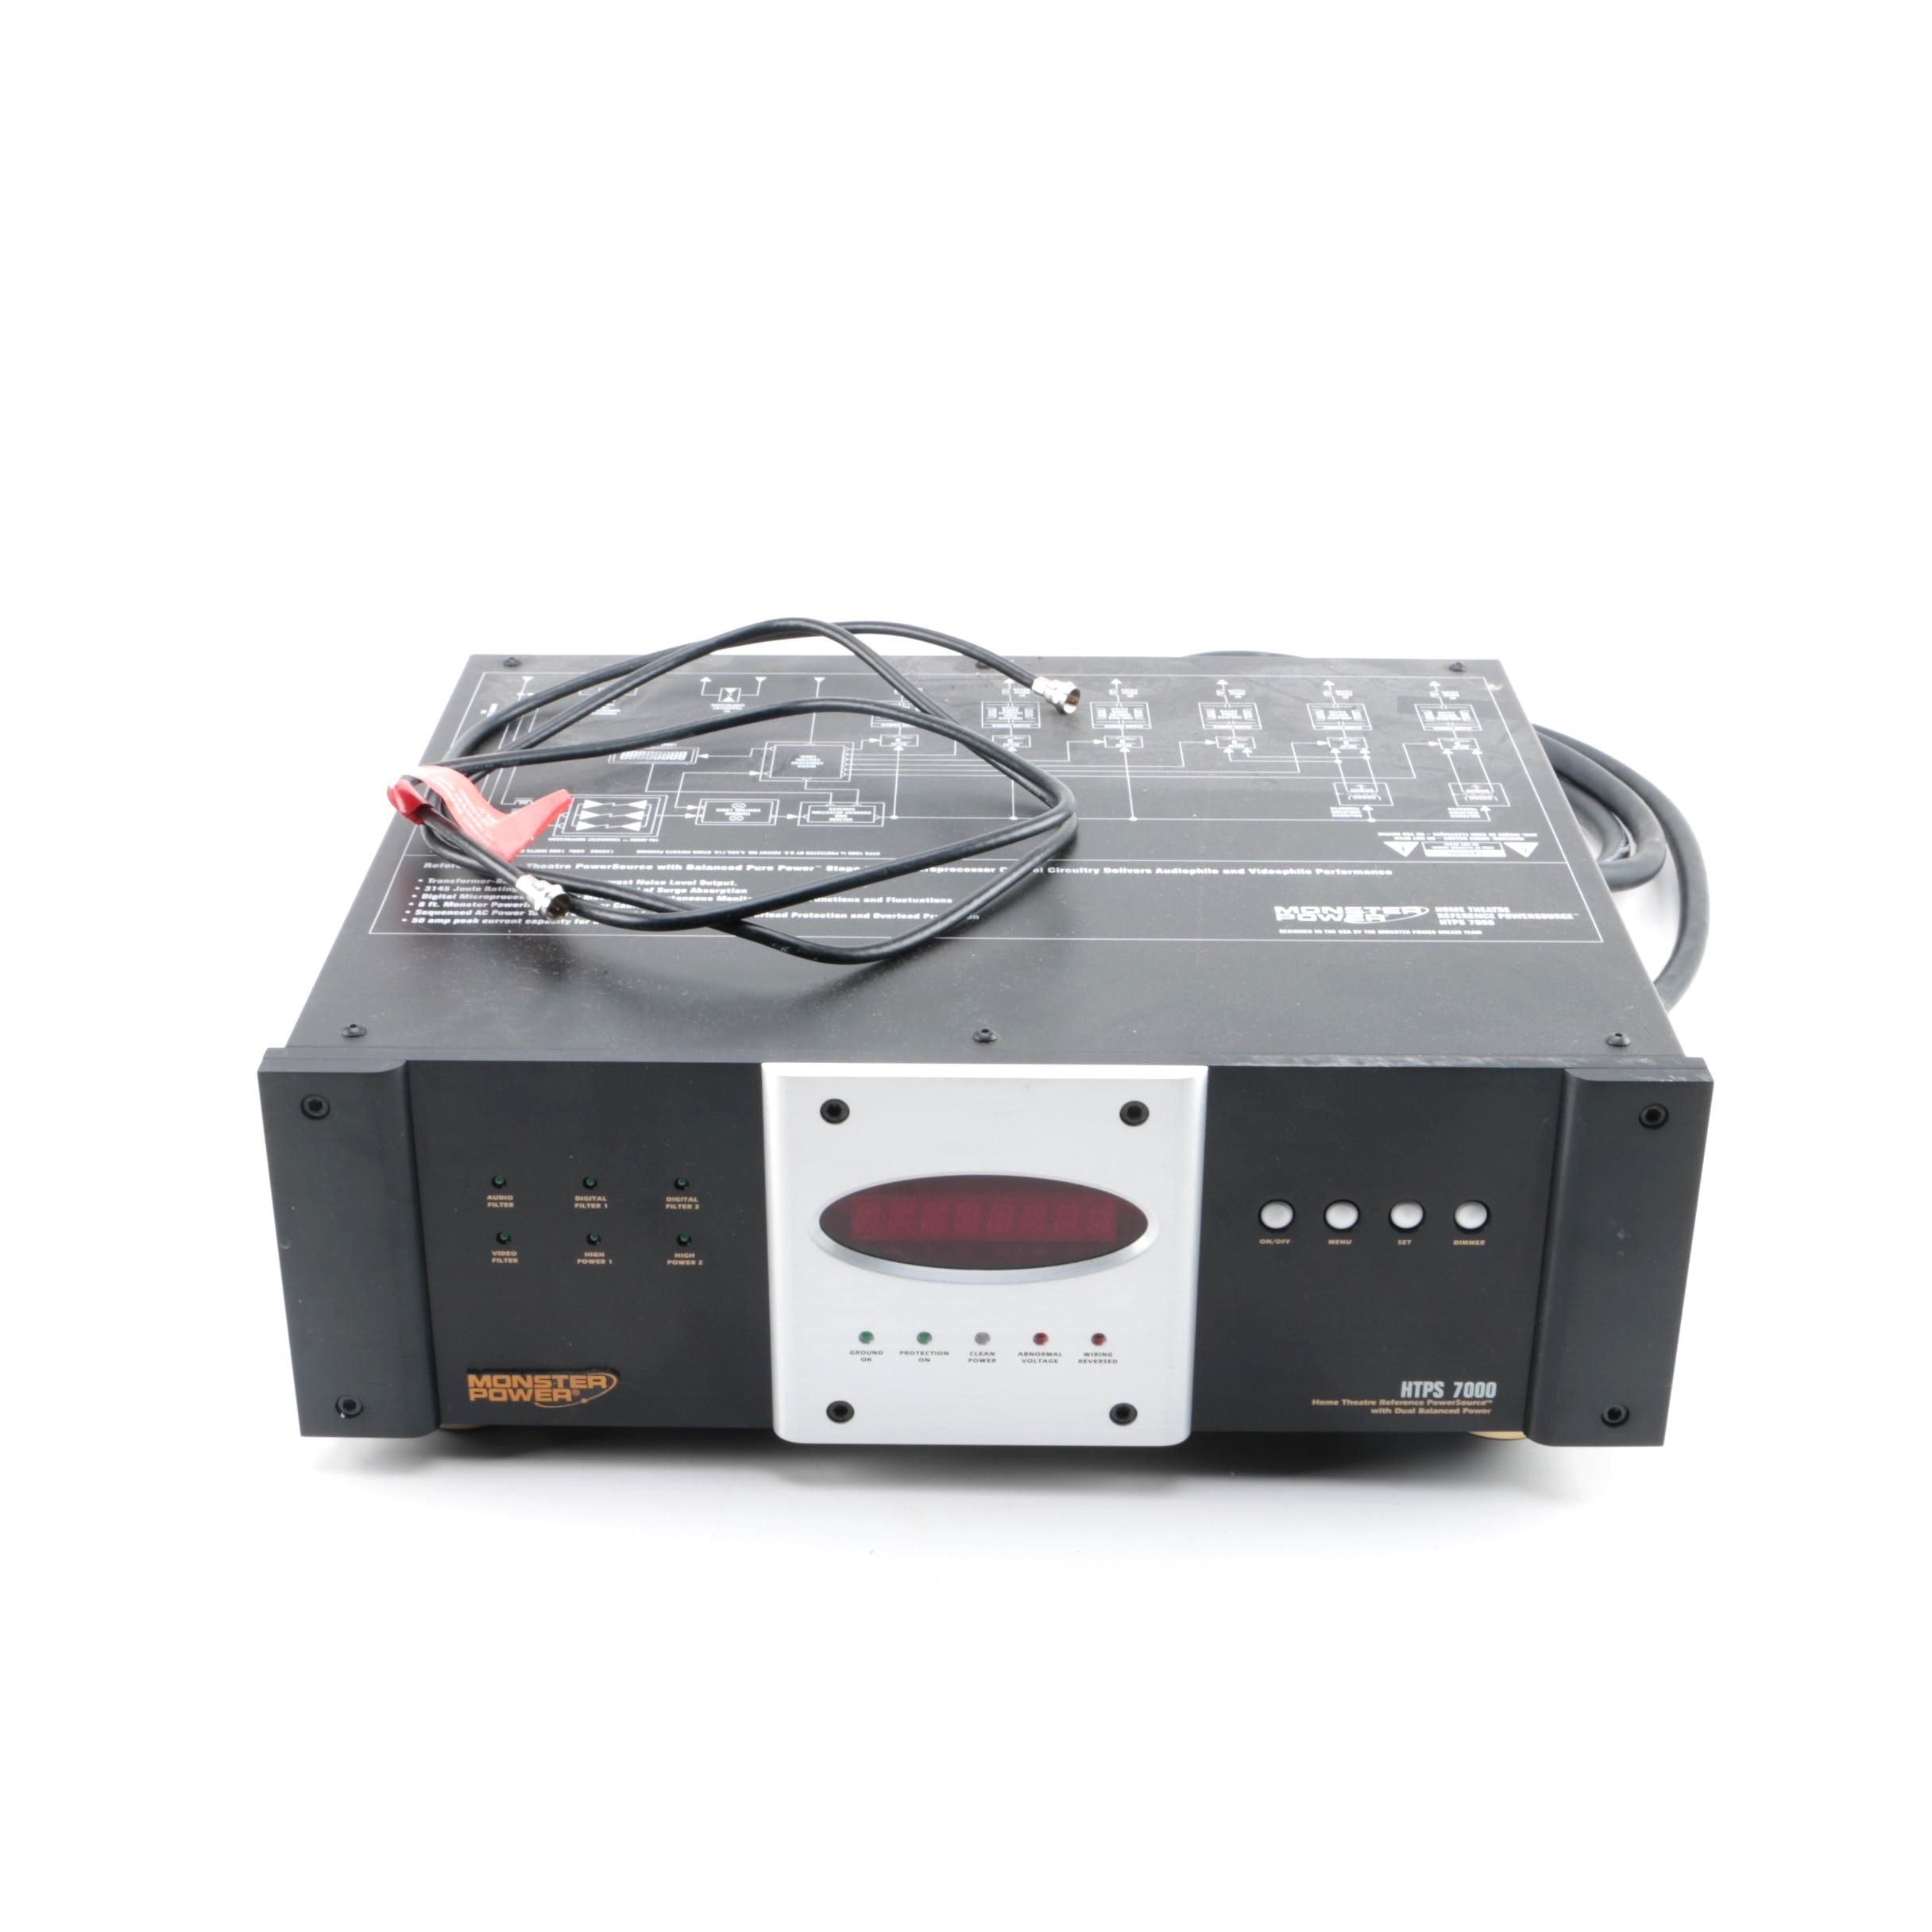 Monster Power Home Theatre Power Source